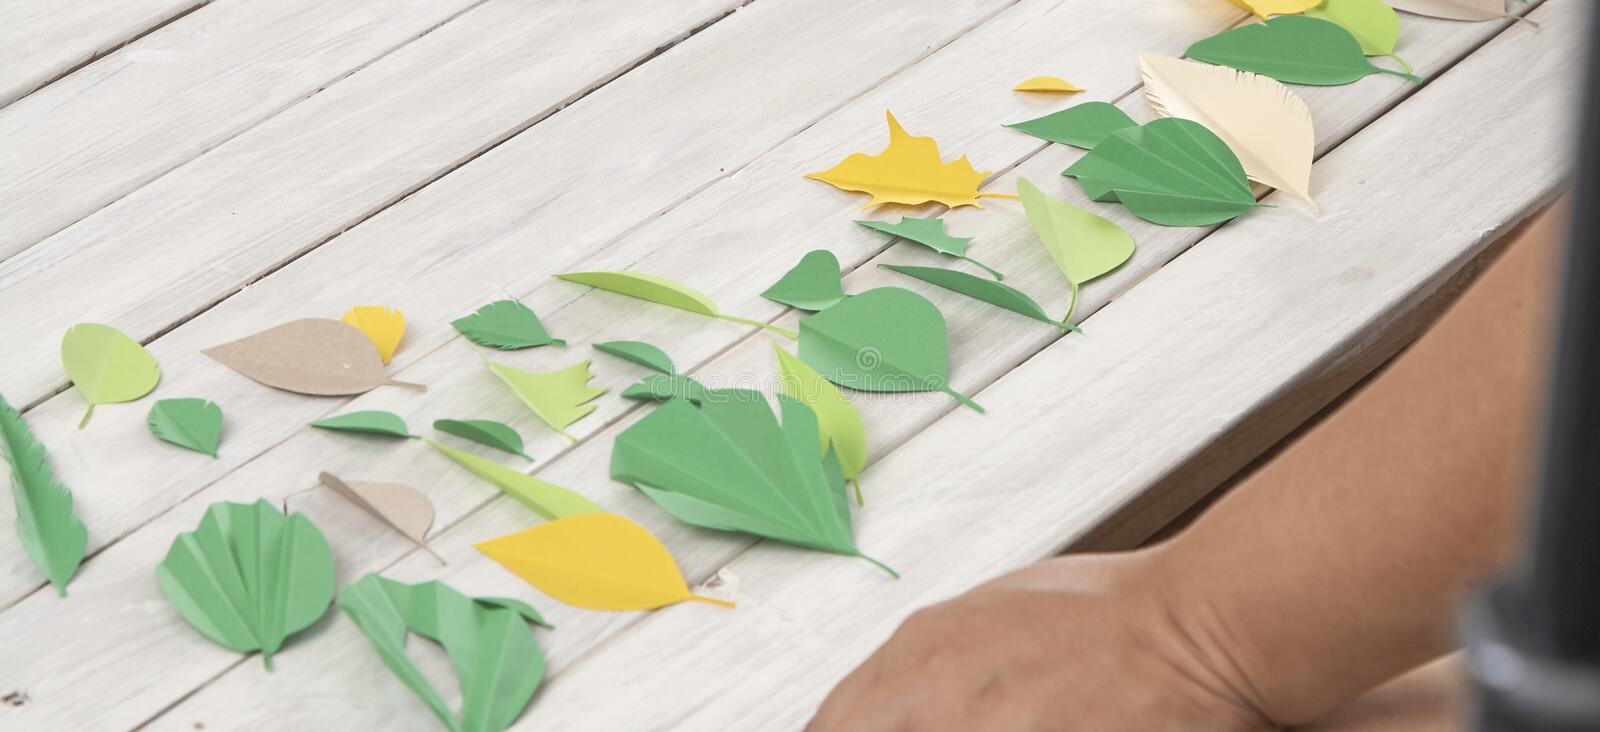 Art paper cut trendy craft style royalty free stock images